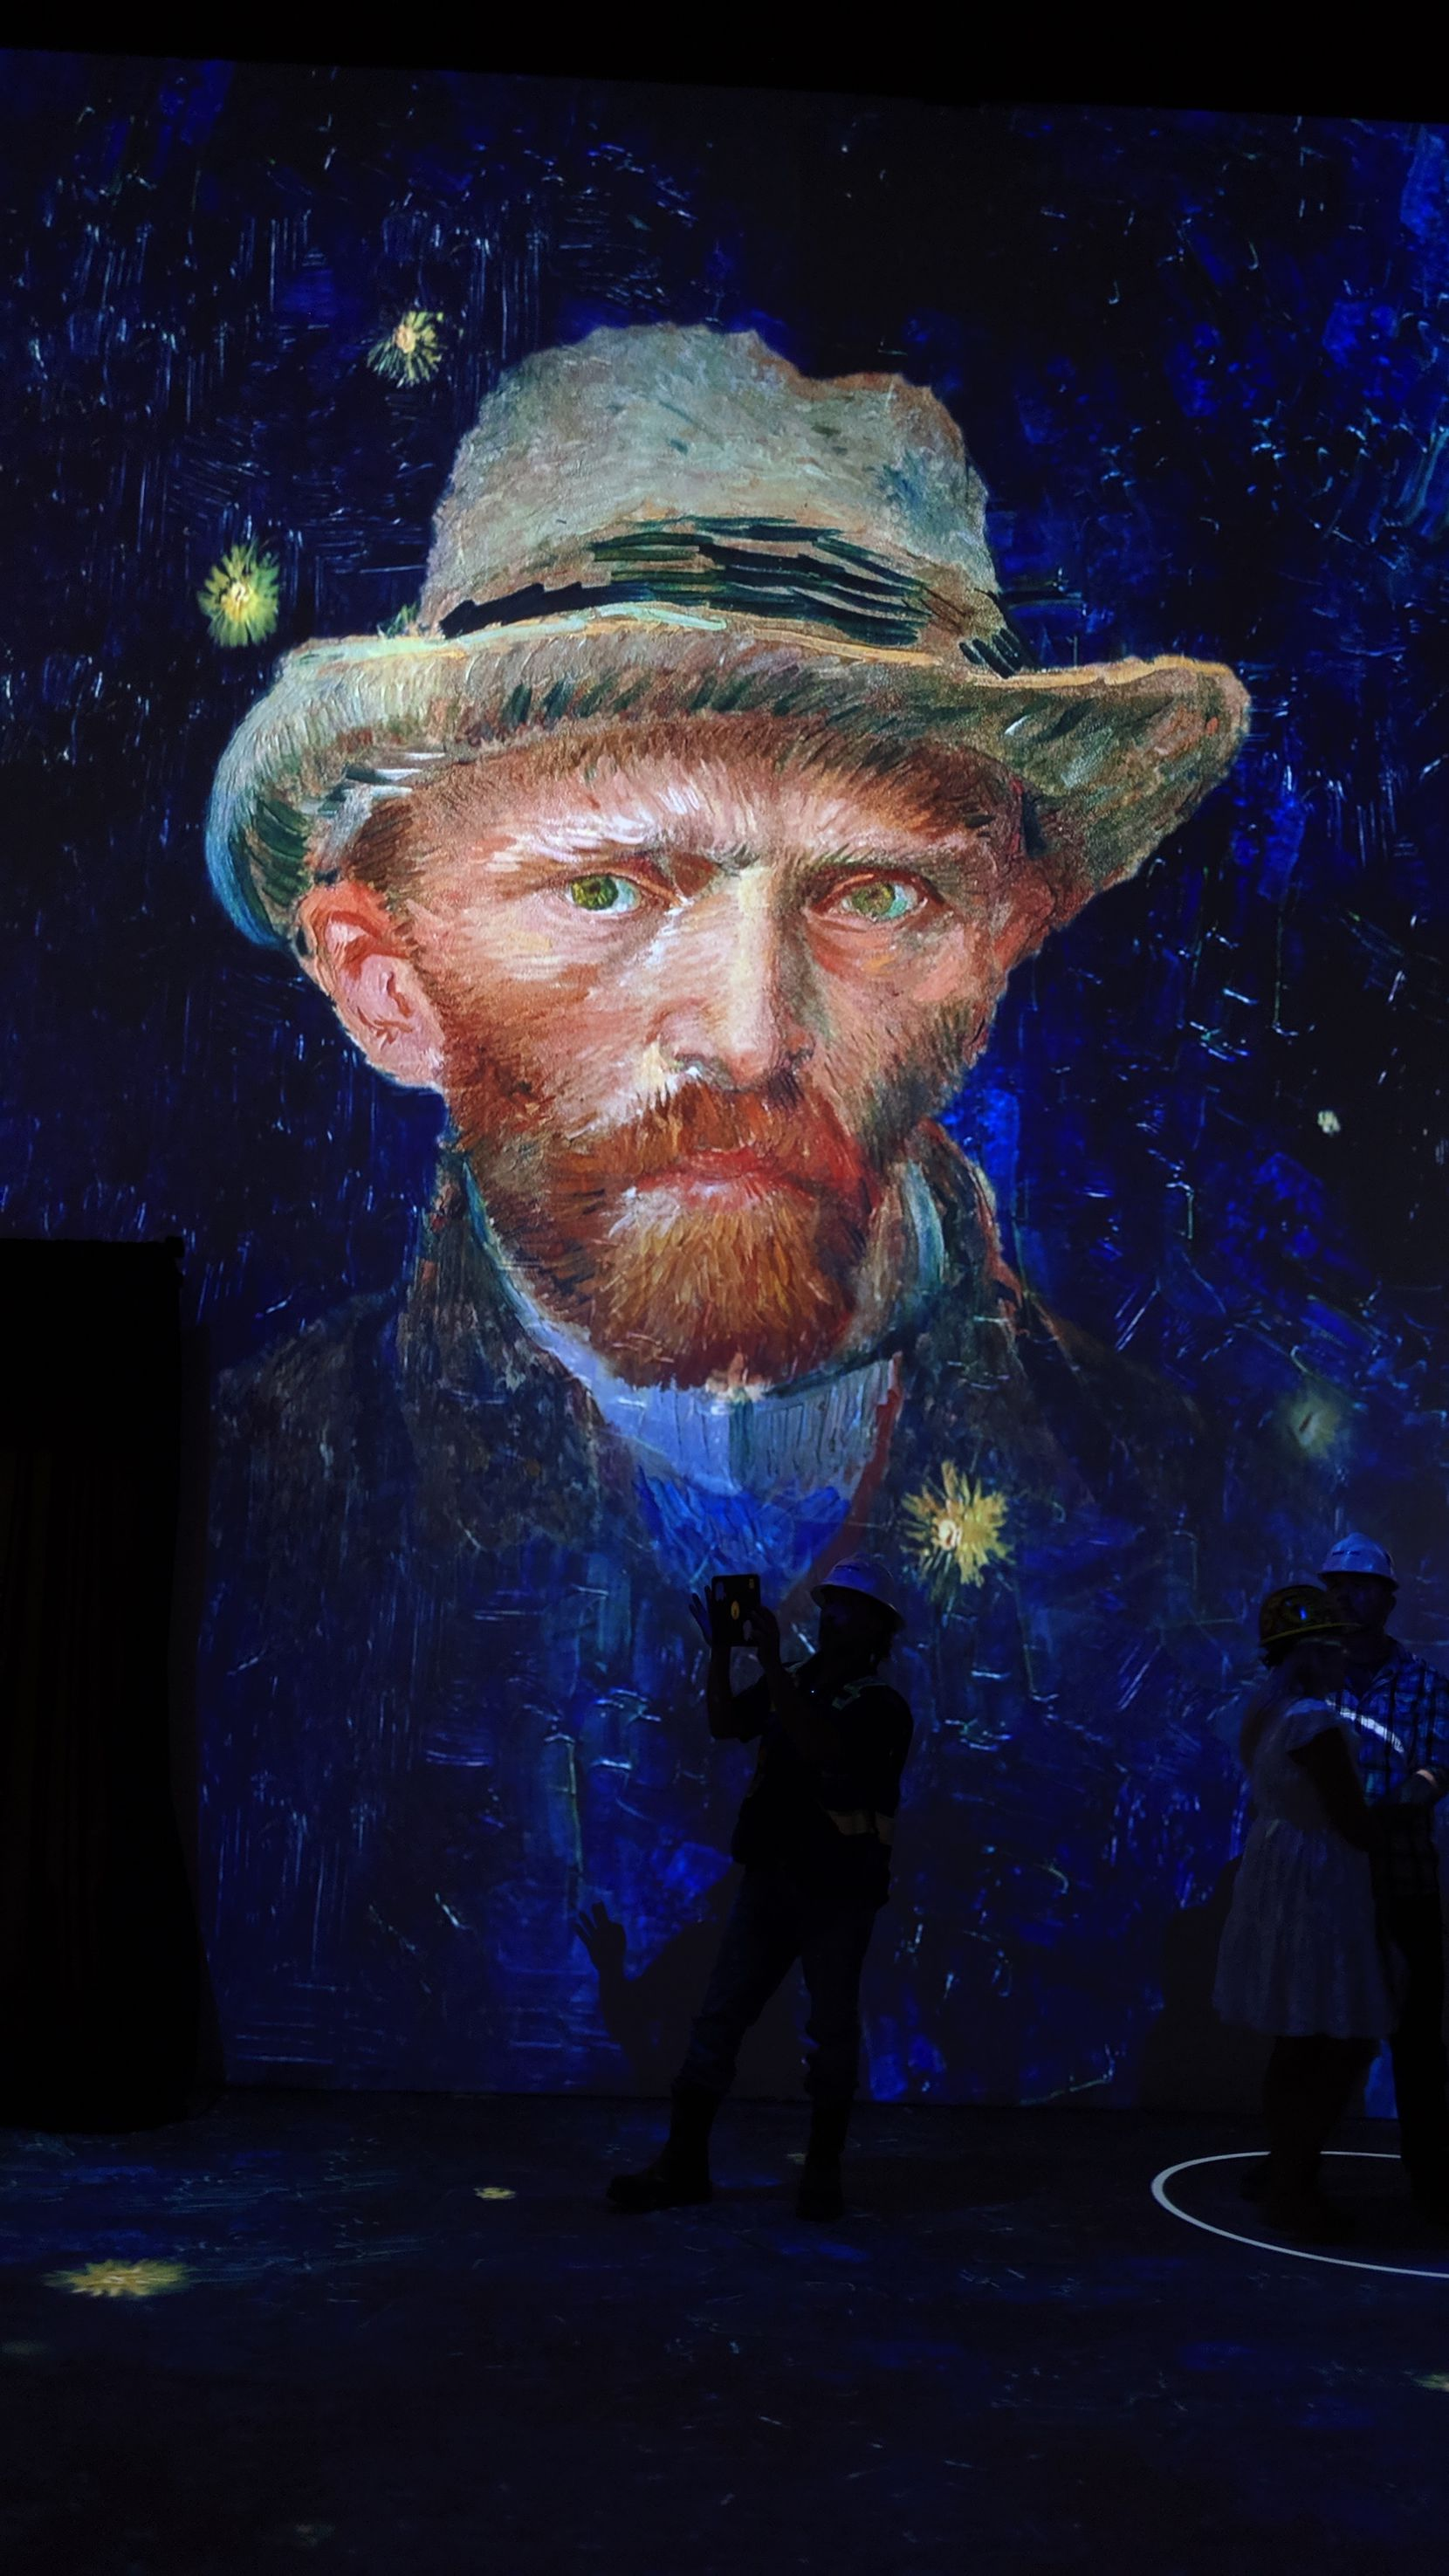 """One section of """"Immersive Van Gogh Exhibit"""" projects a series of self-portraits by the Dutch painter."""